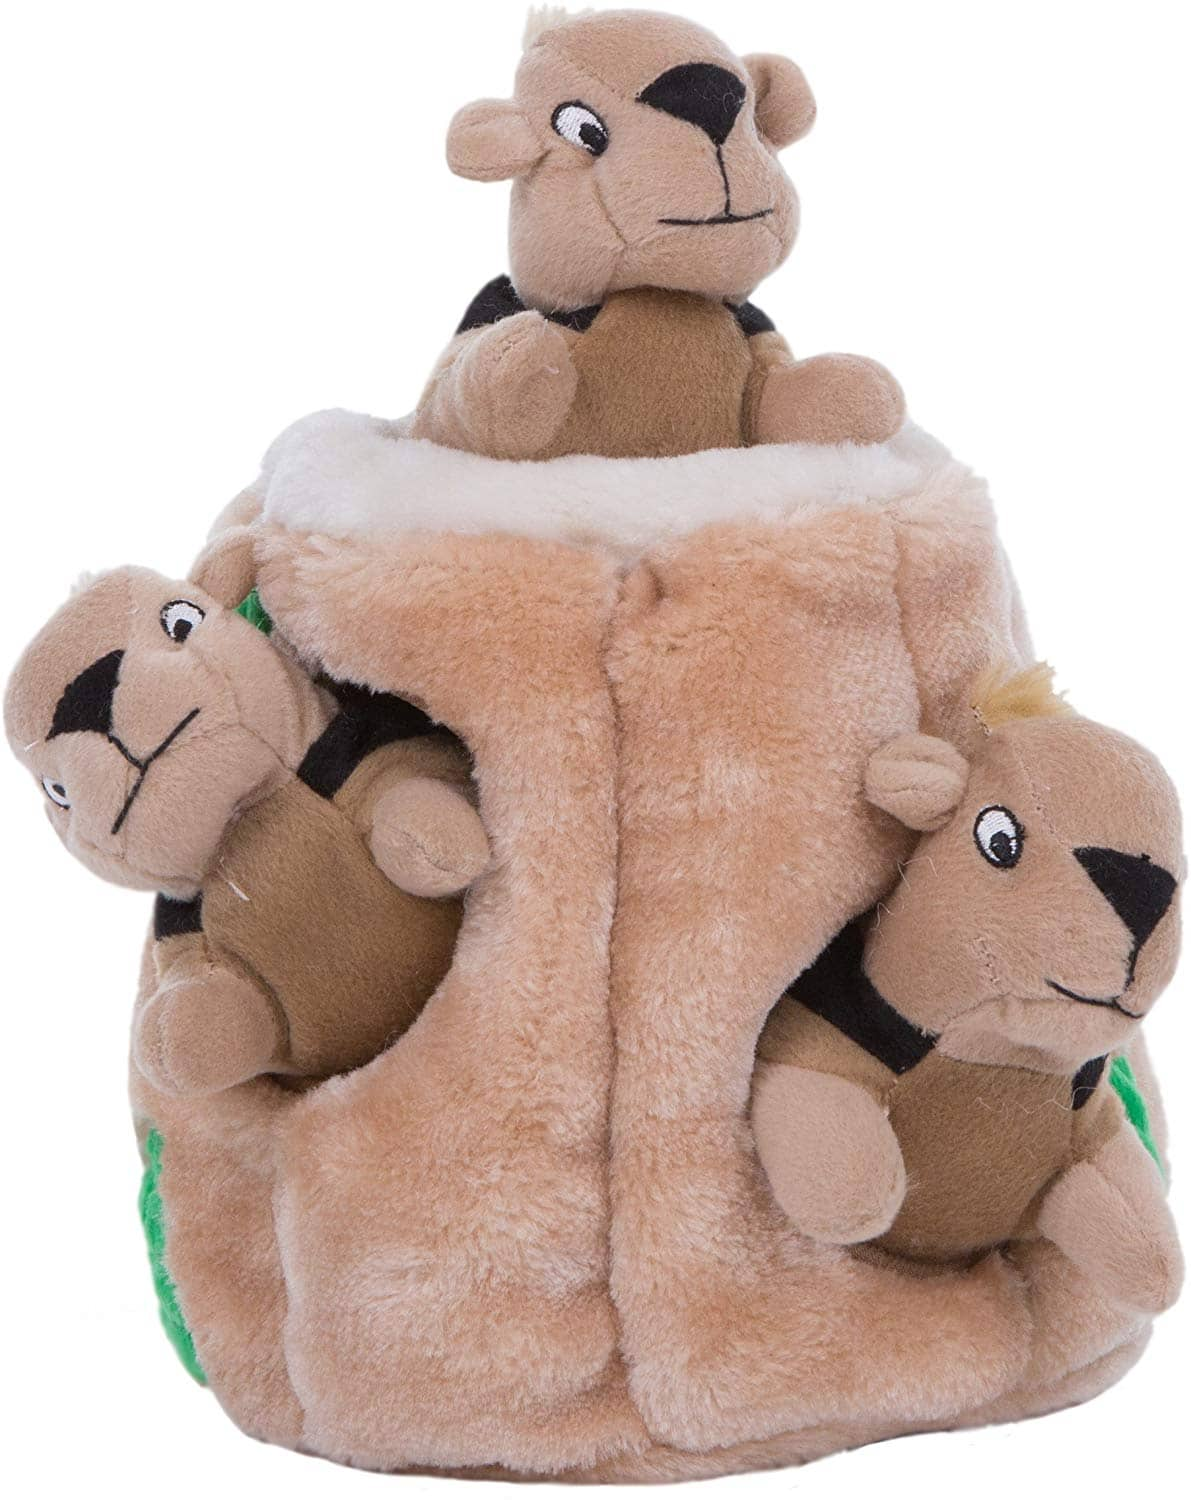 Outward Hound Interactive Puzzle Toy: Hide-A-Squirrel toy LARGE $8.84